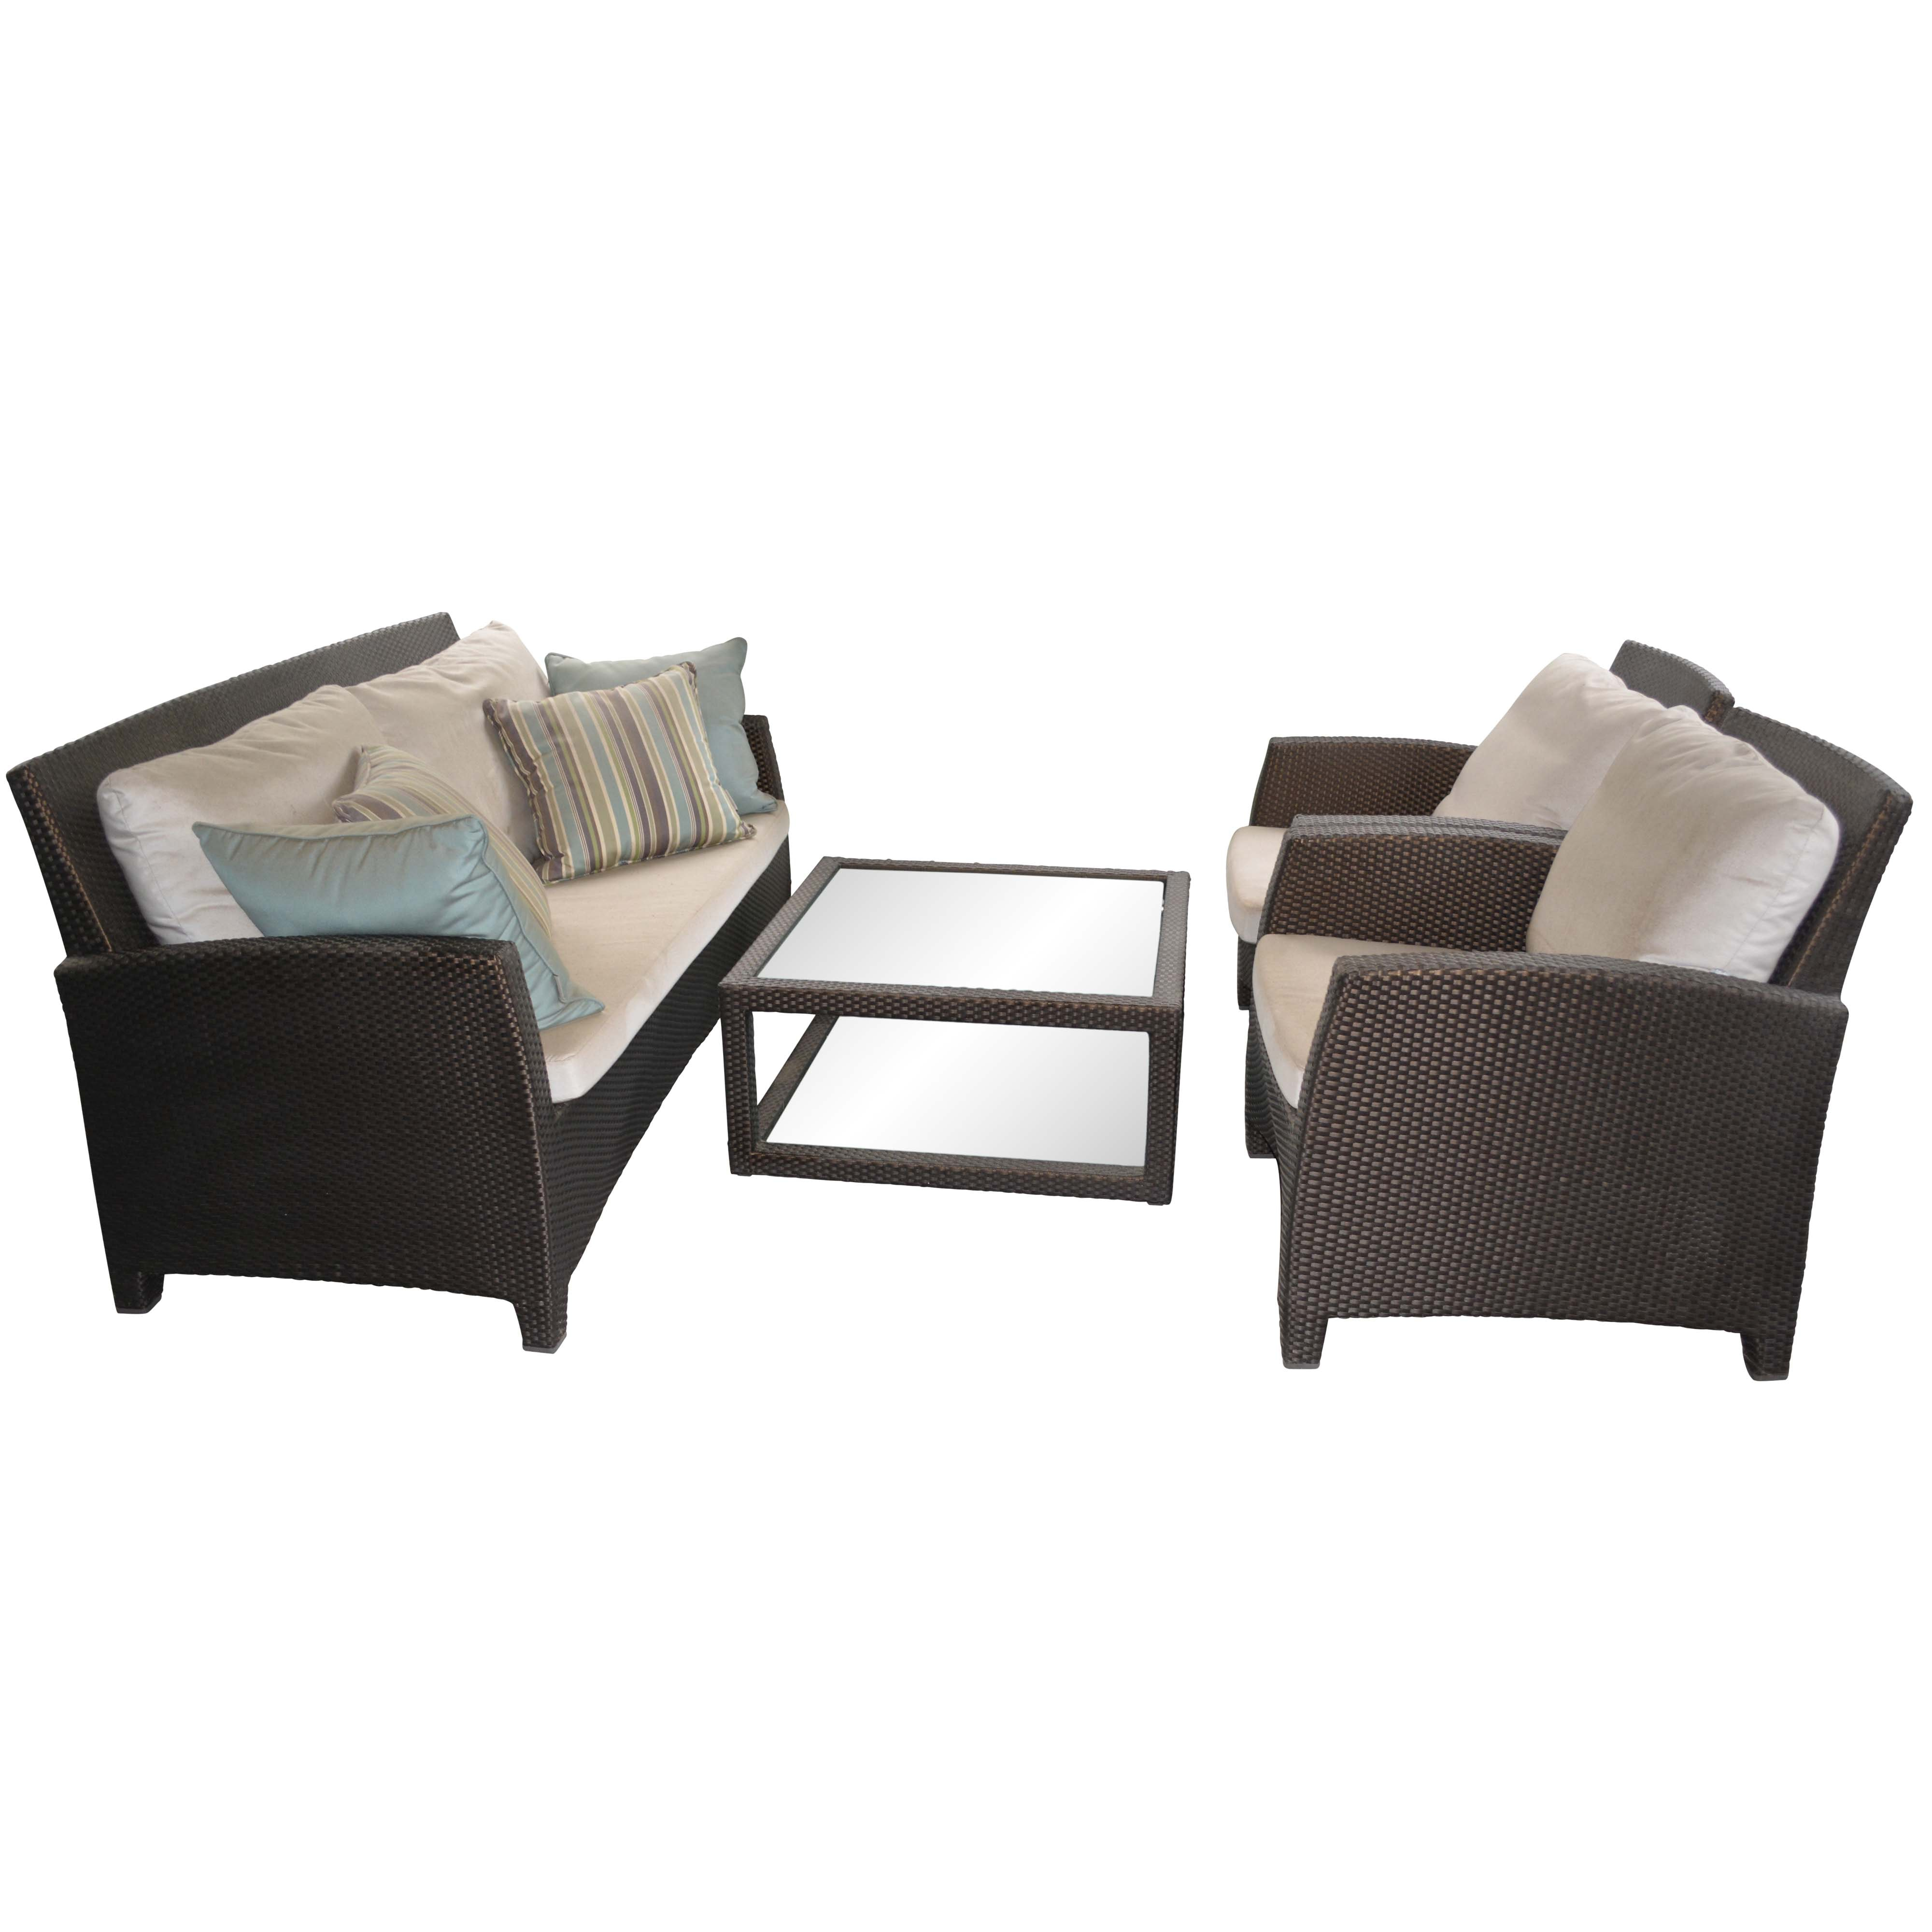 Janus Et Cie Four Piece Brown Wicker Style Patio Furniture Set ...